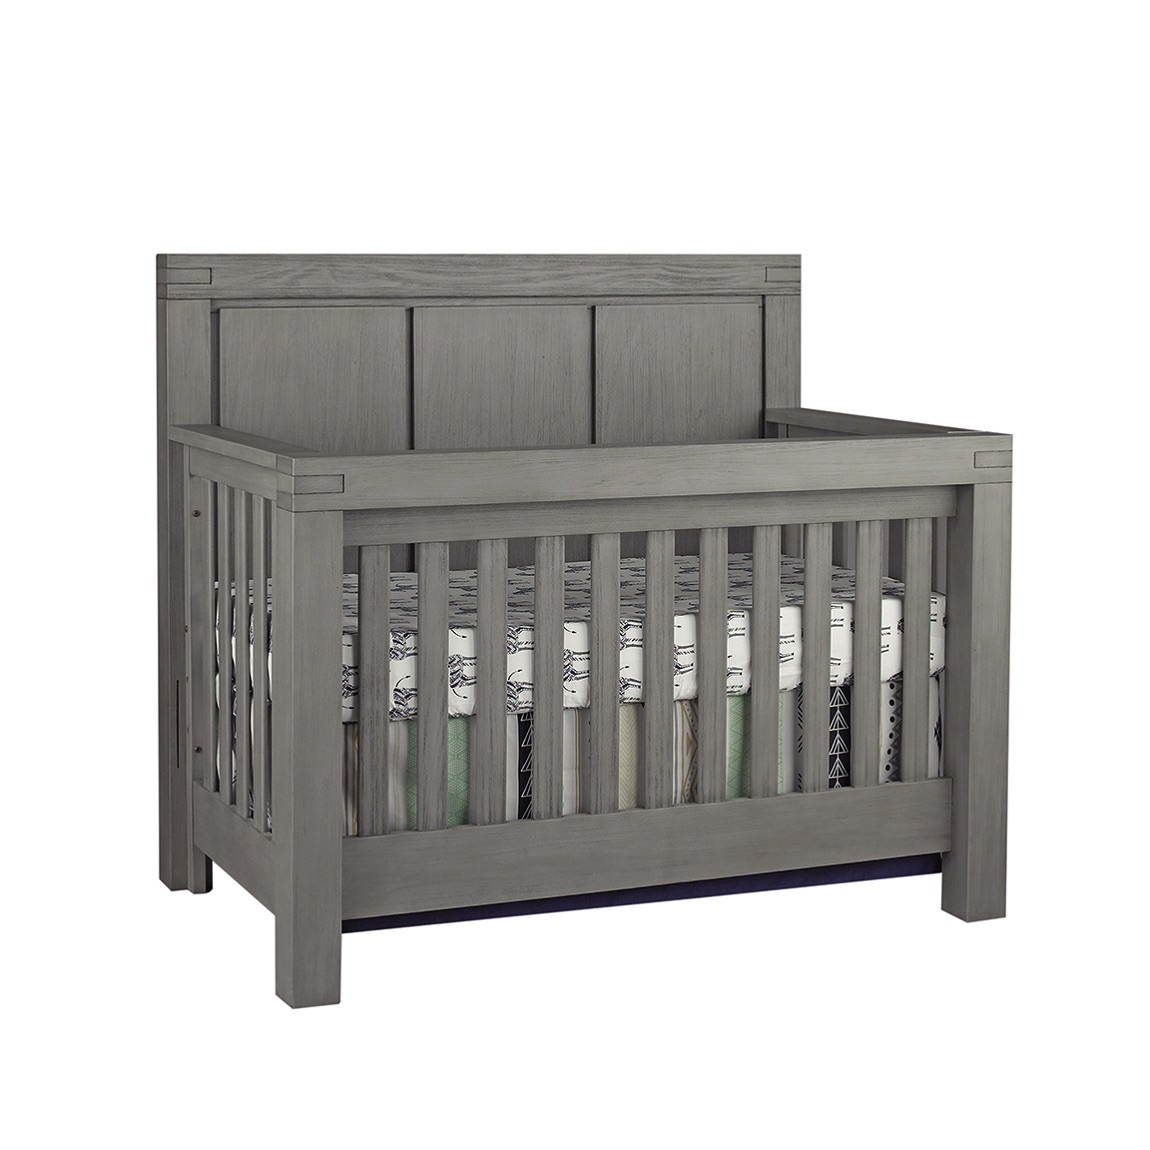 4 In 1 Convertible Crib Piermont Rustic Stonington Gray